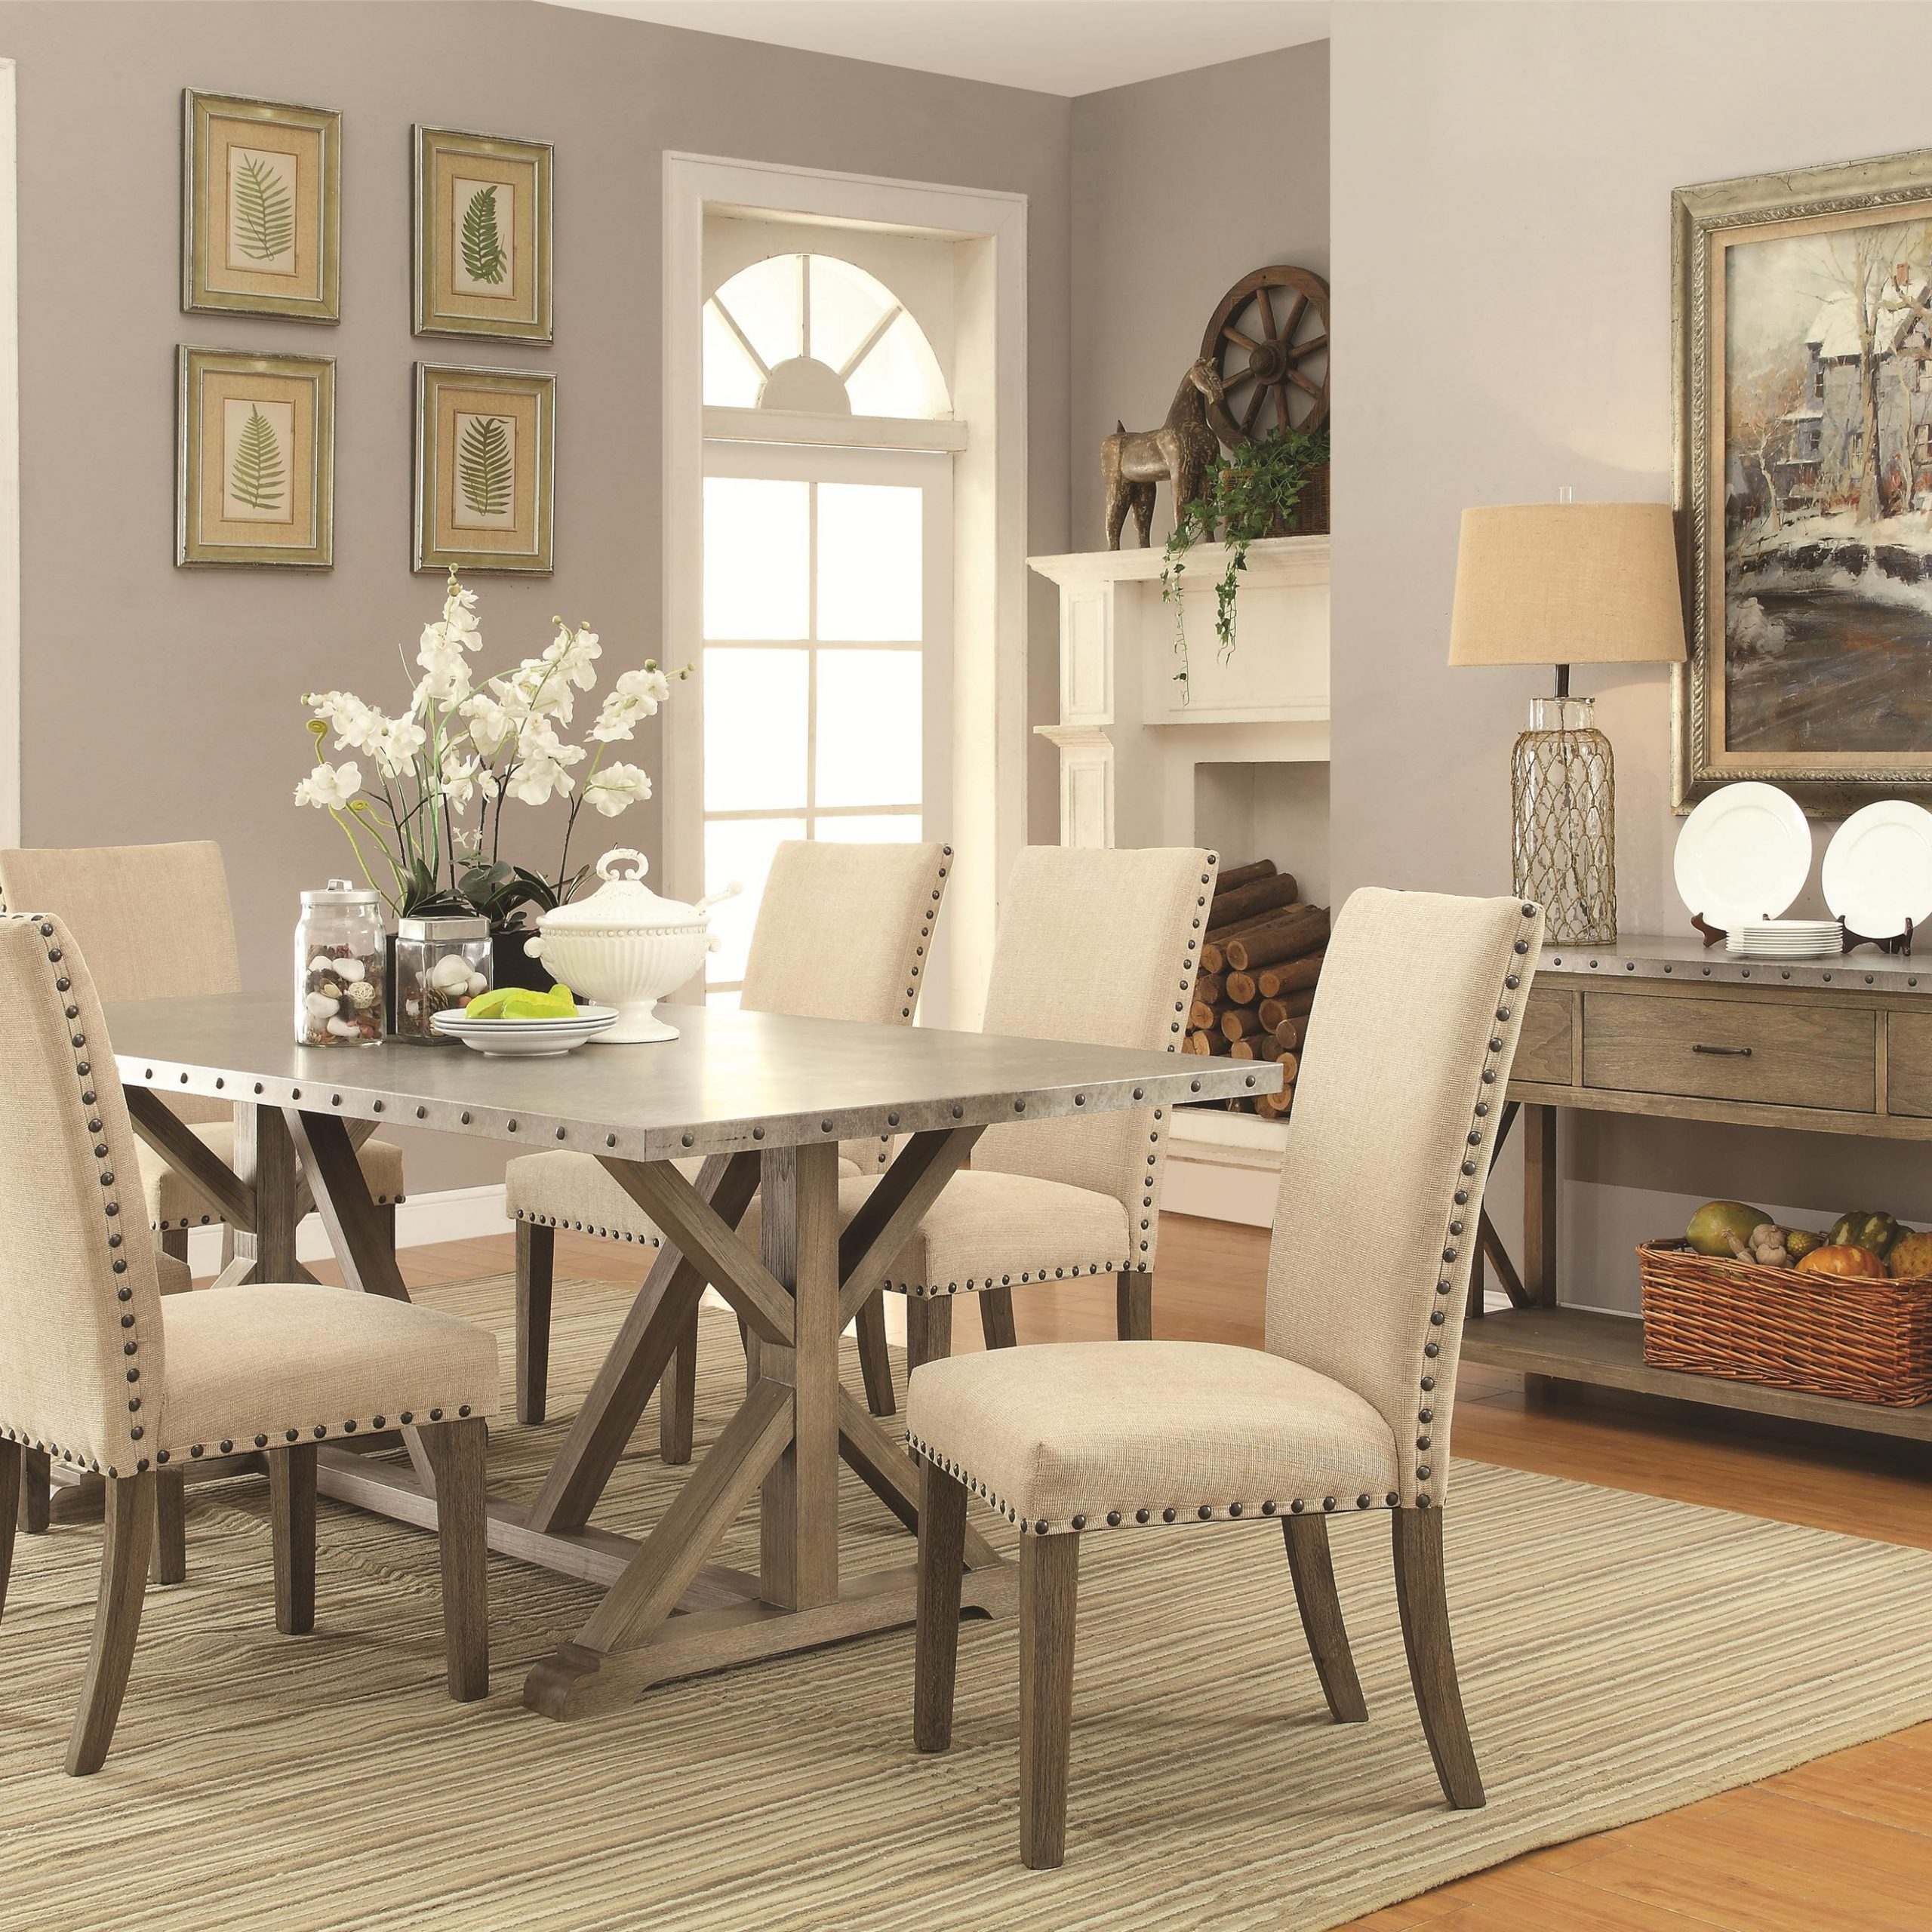 7 Piece Transitional Style Table And Chair Set With Metal Within Newest Transitional 6 Seating Casual Dining Tables (View 5 of 25)